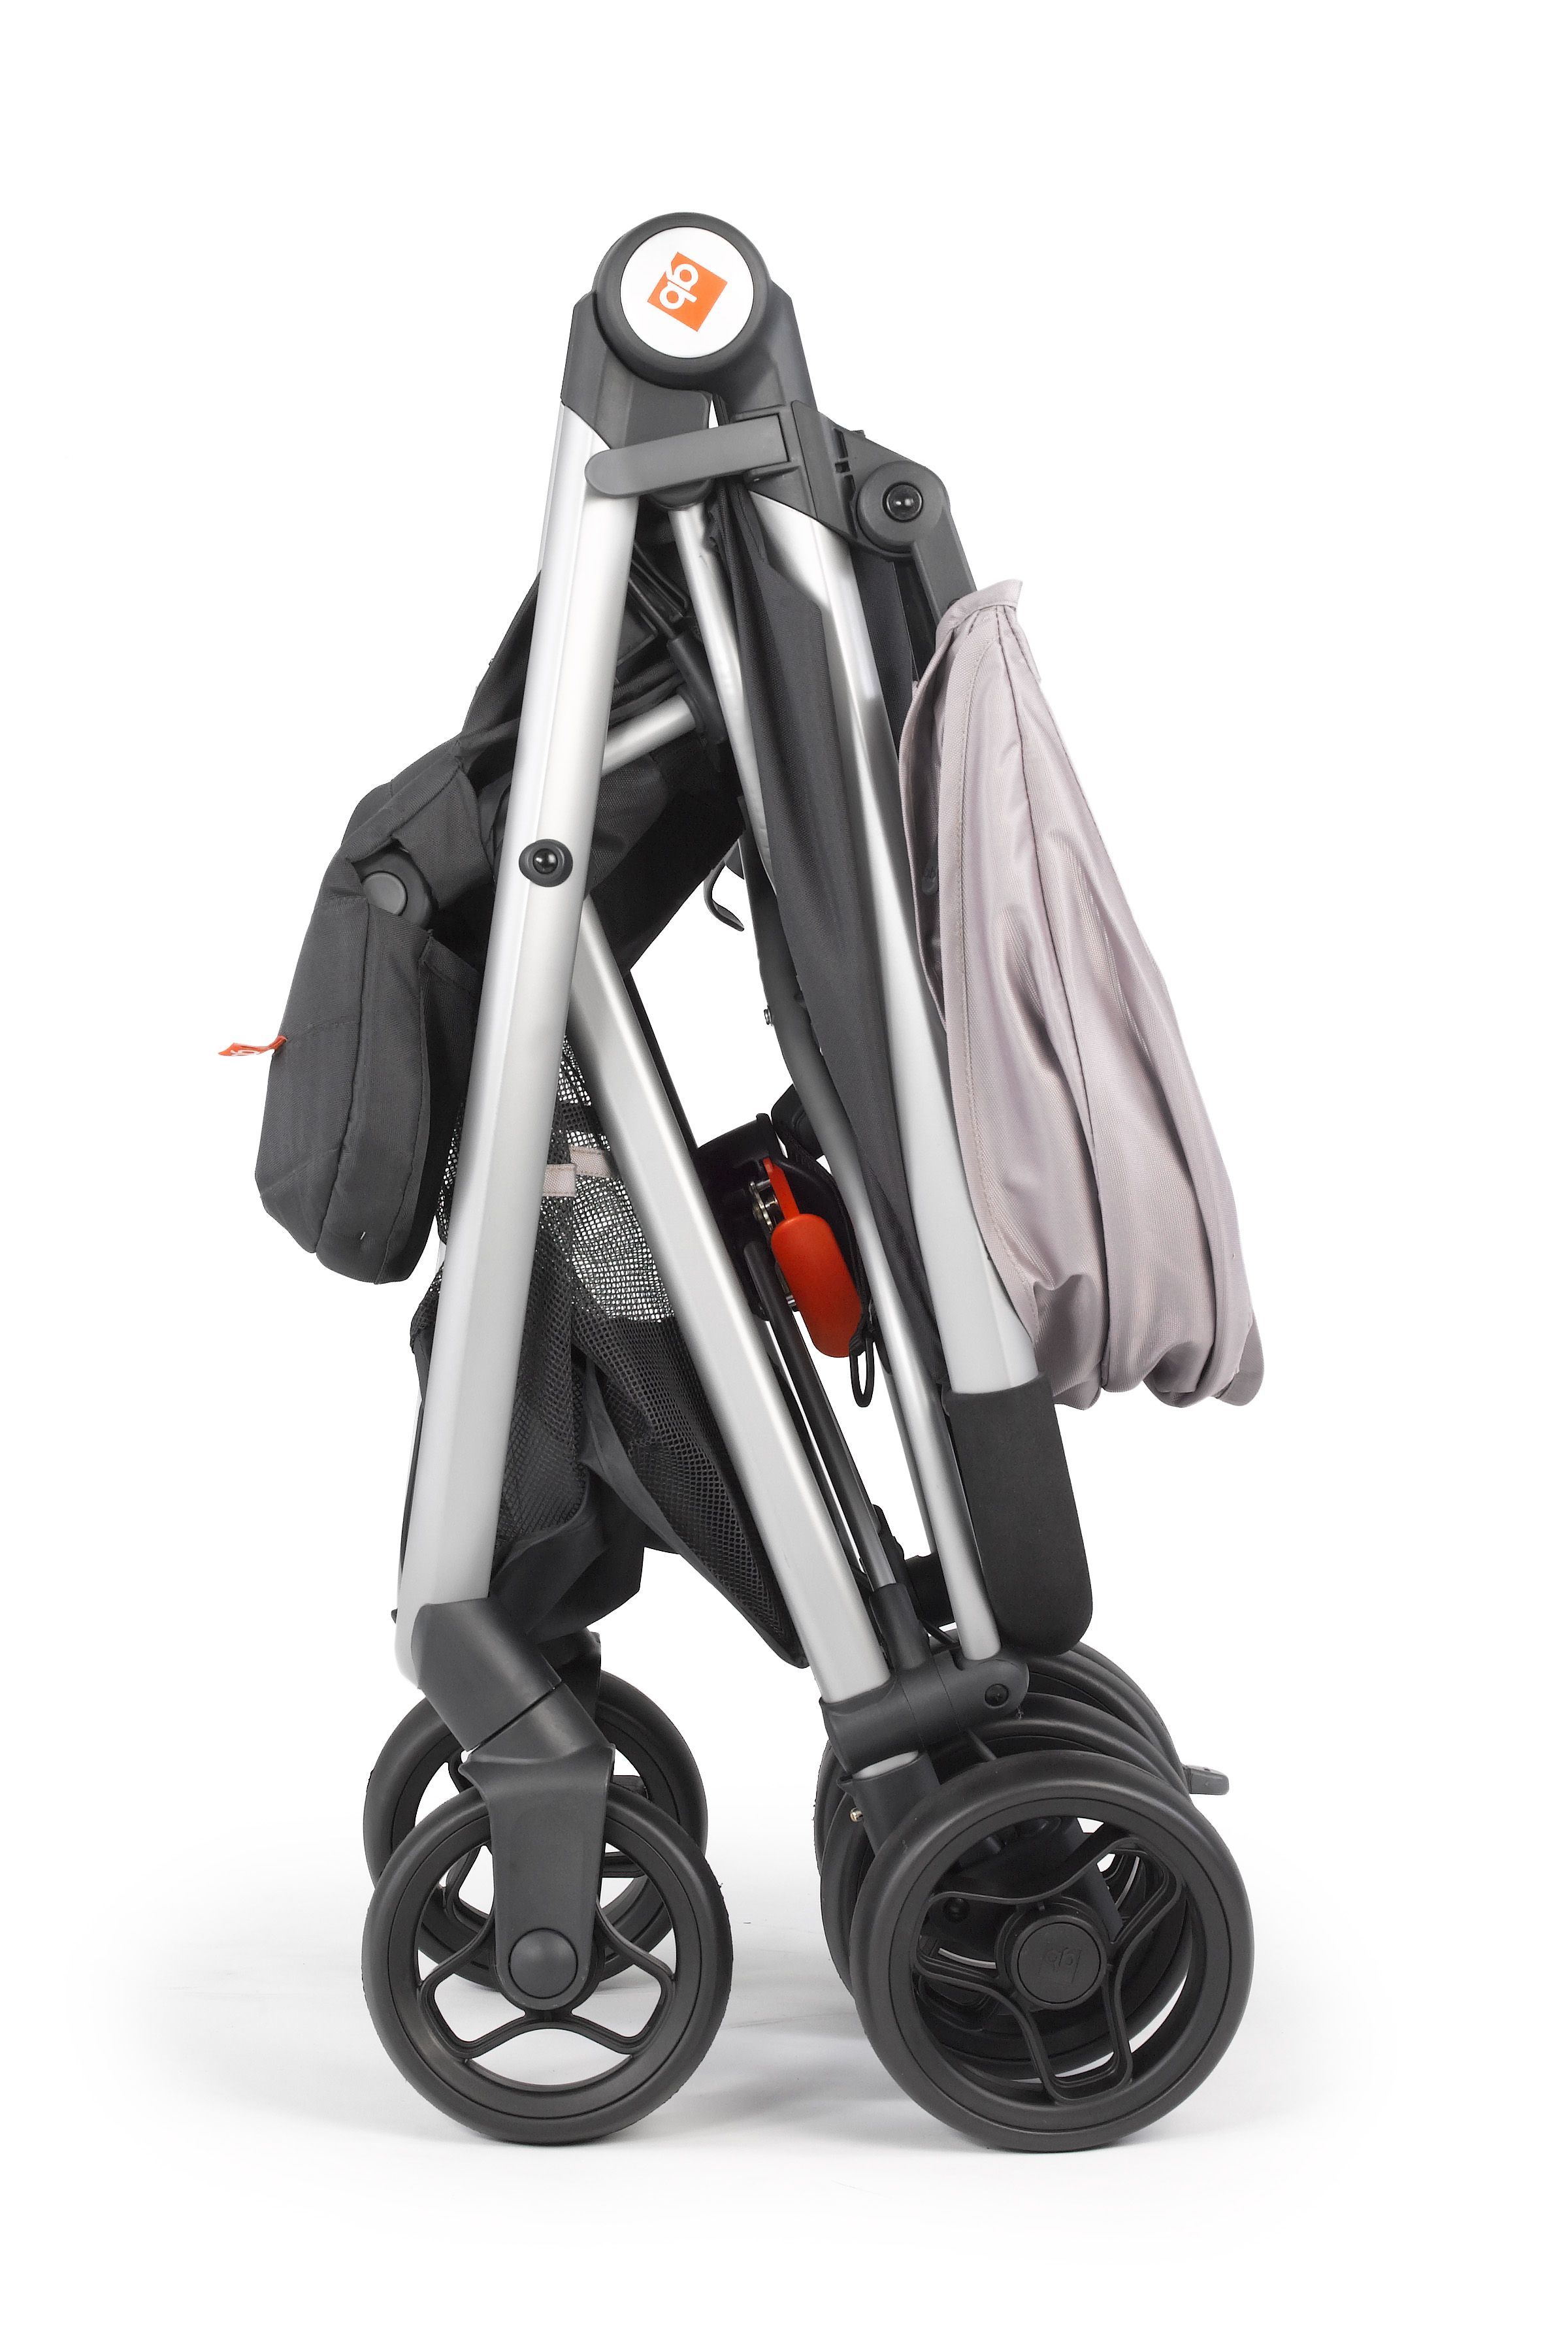 GB Alara Travel System. Compact fold perfect for city life